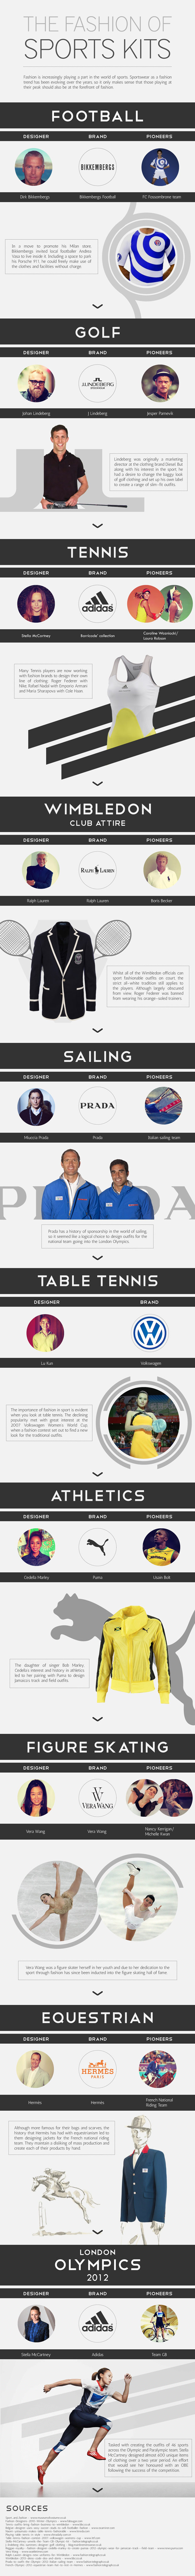 Fashion in Sportswear-Infographic